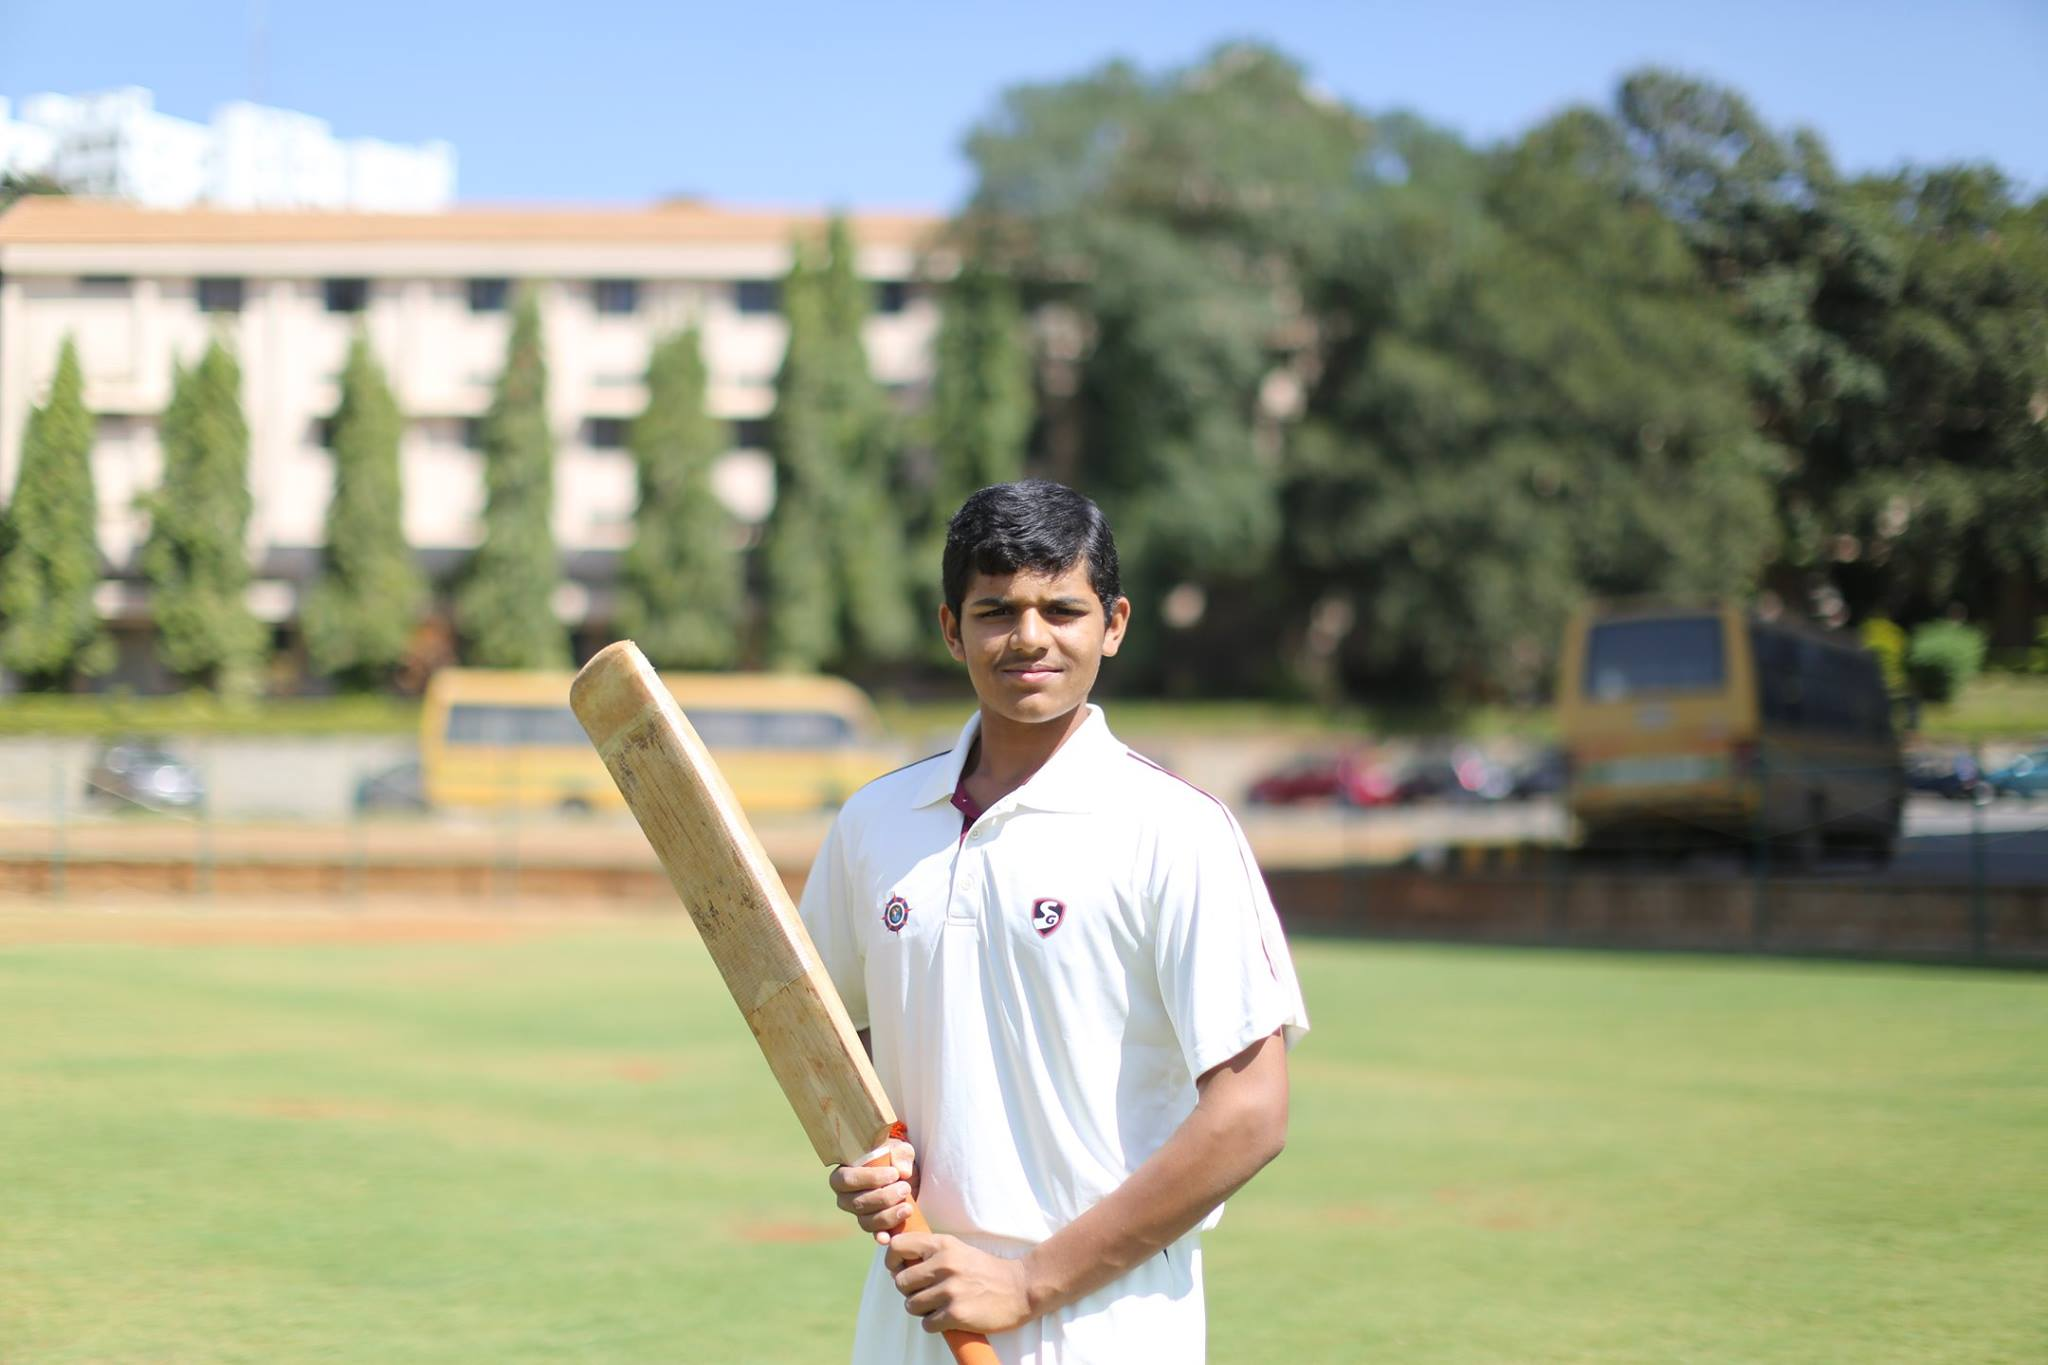 Shivakumar represents Karnataka in the Under 19 Trophy